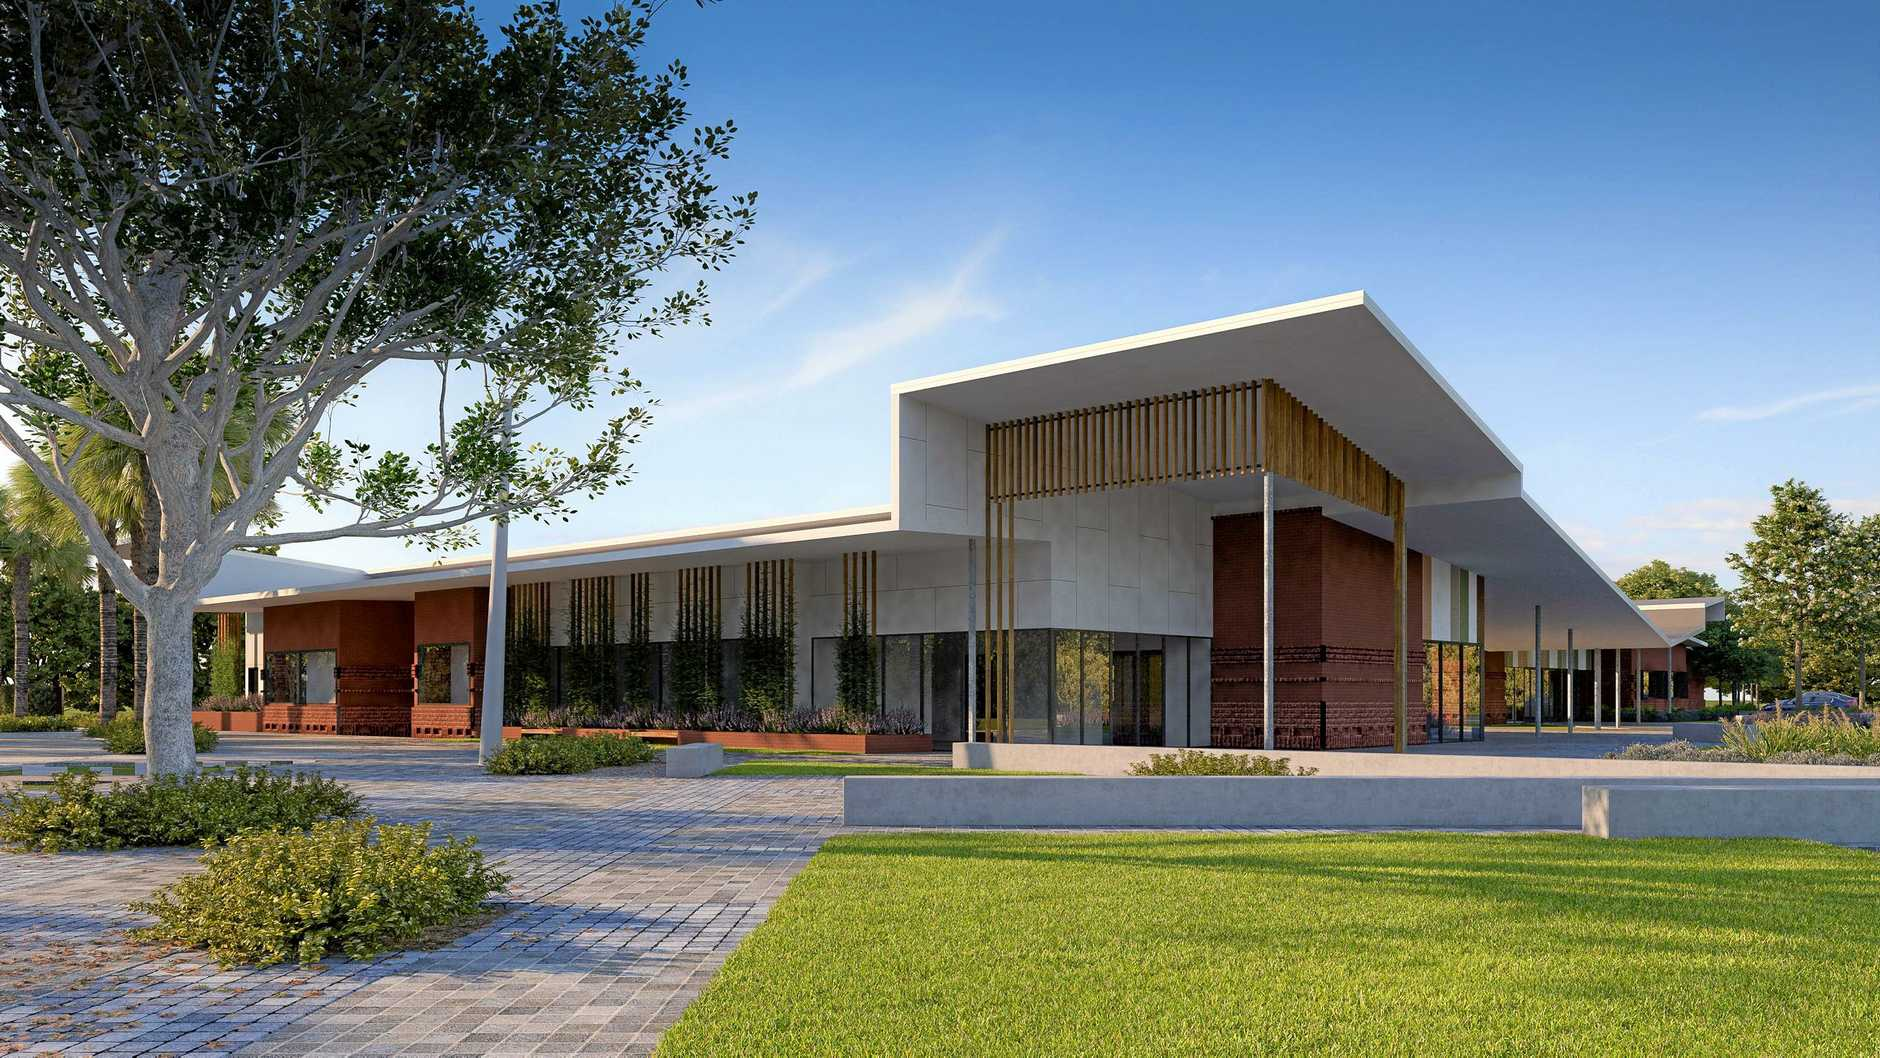 An artist's impression shows the design for the new Baringa Community Centre.